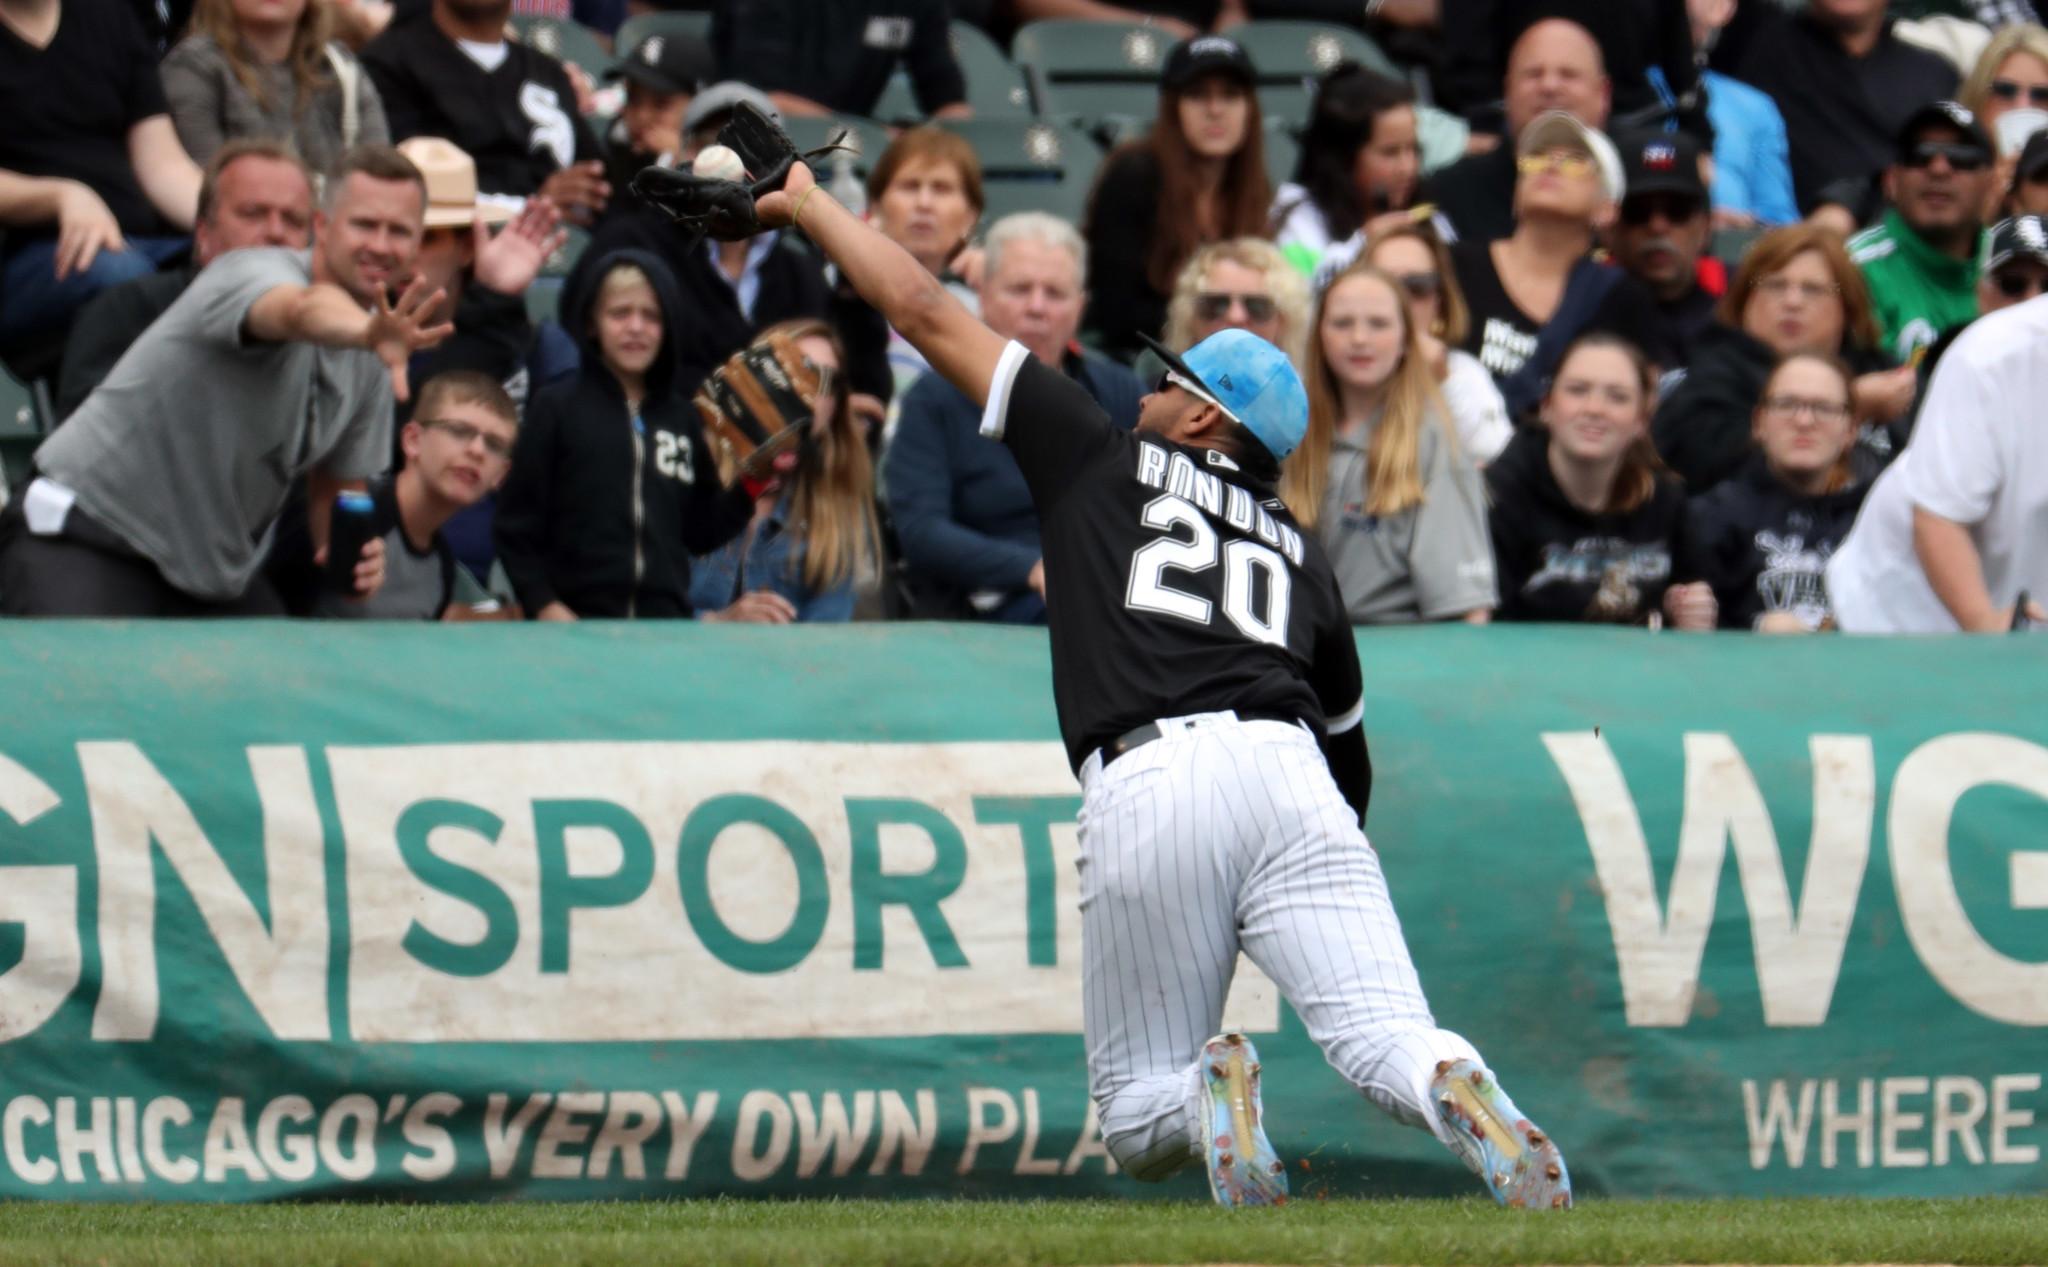 Yankees 10, White Sox 3